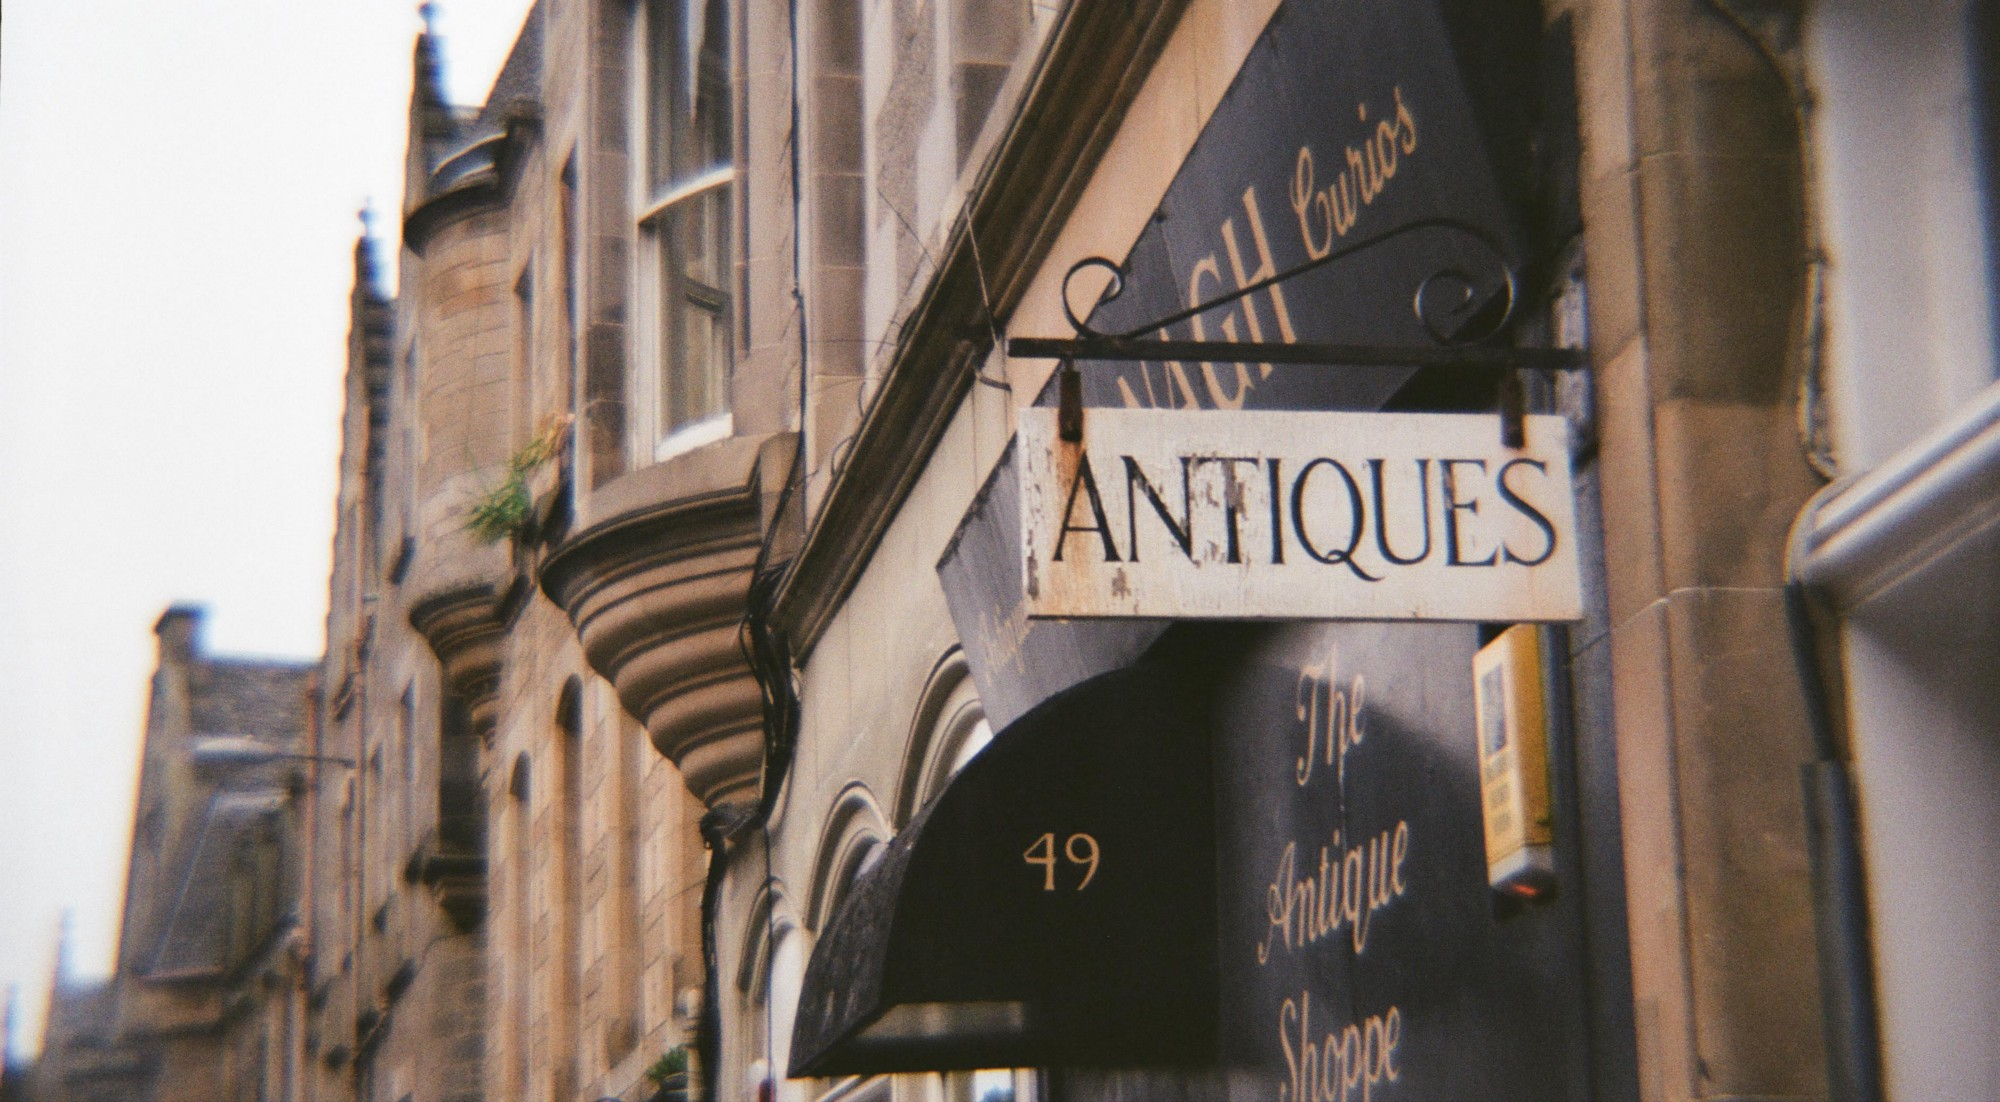 An antique store touching the grounds of the old building